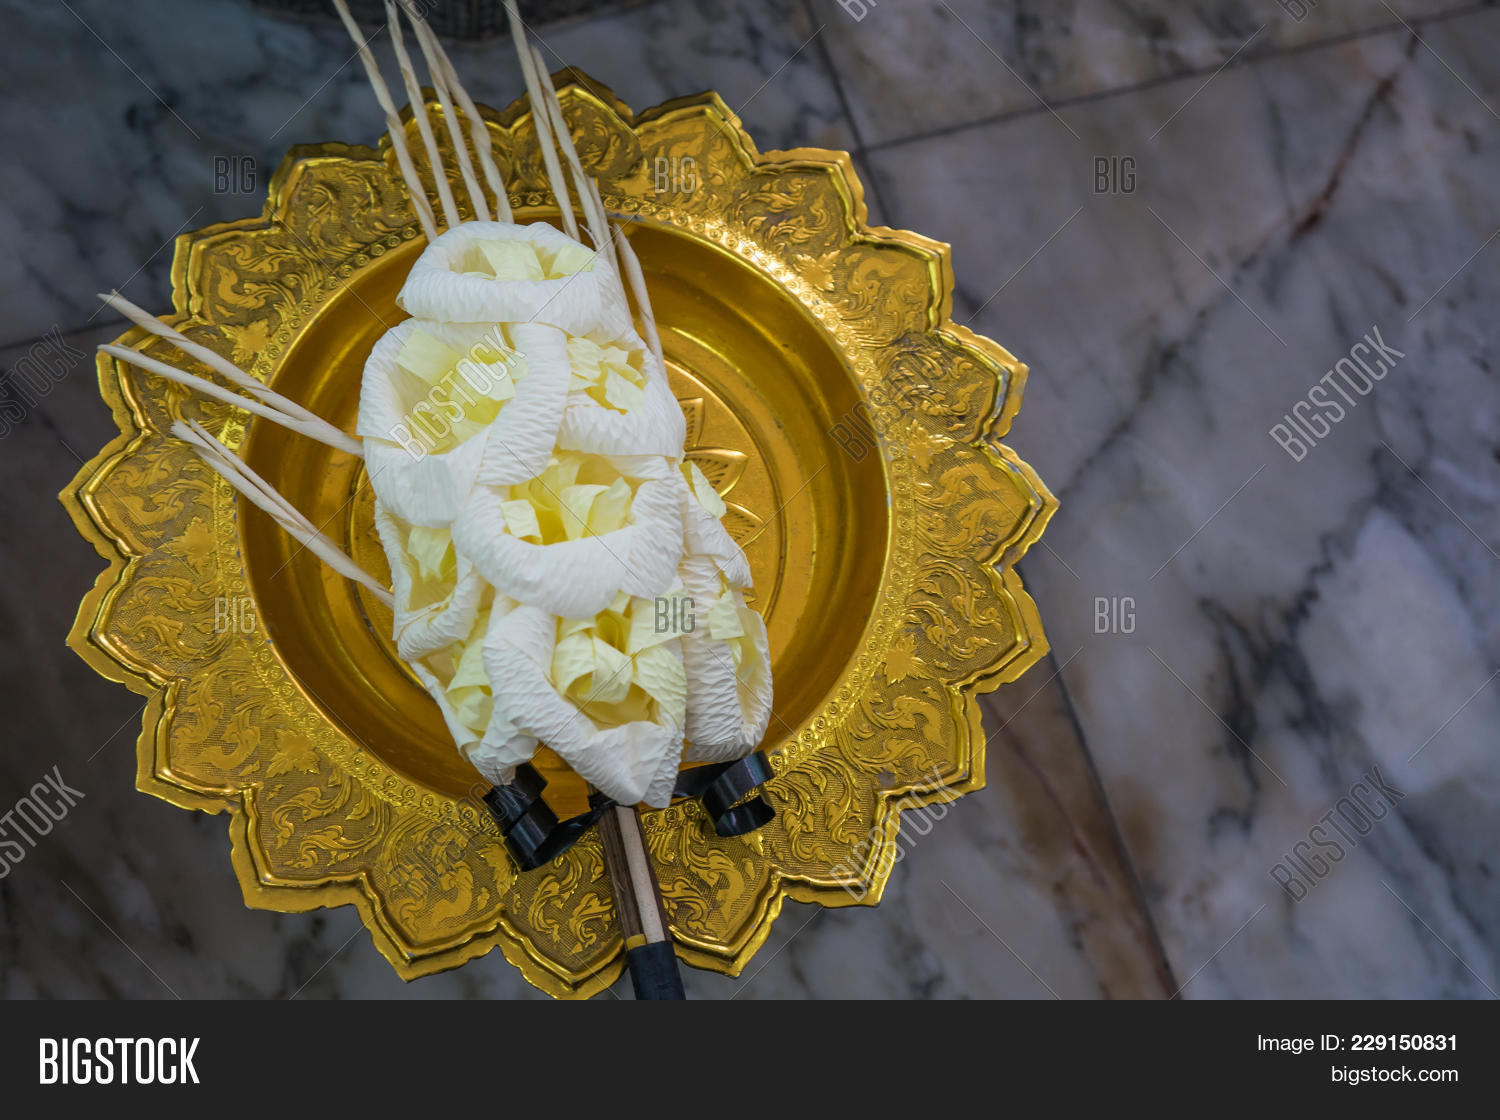 Artificial Funeral Image Photo Free Trial Bigstock